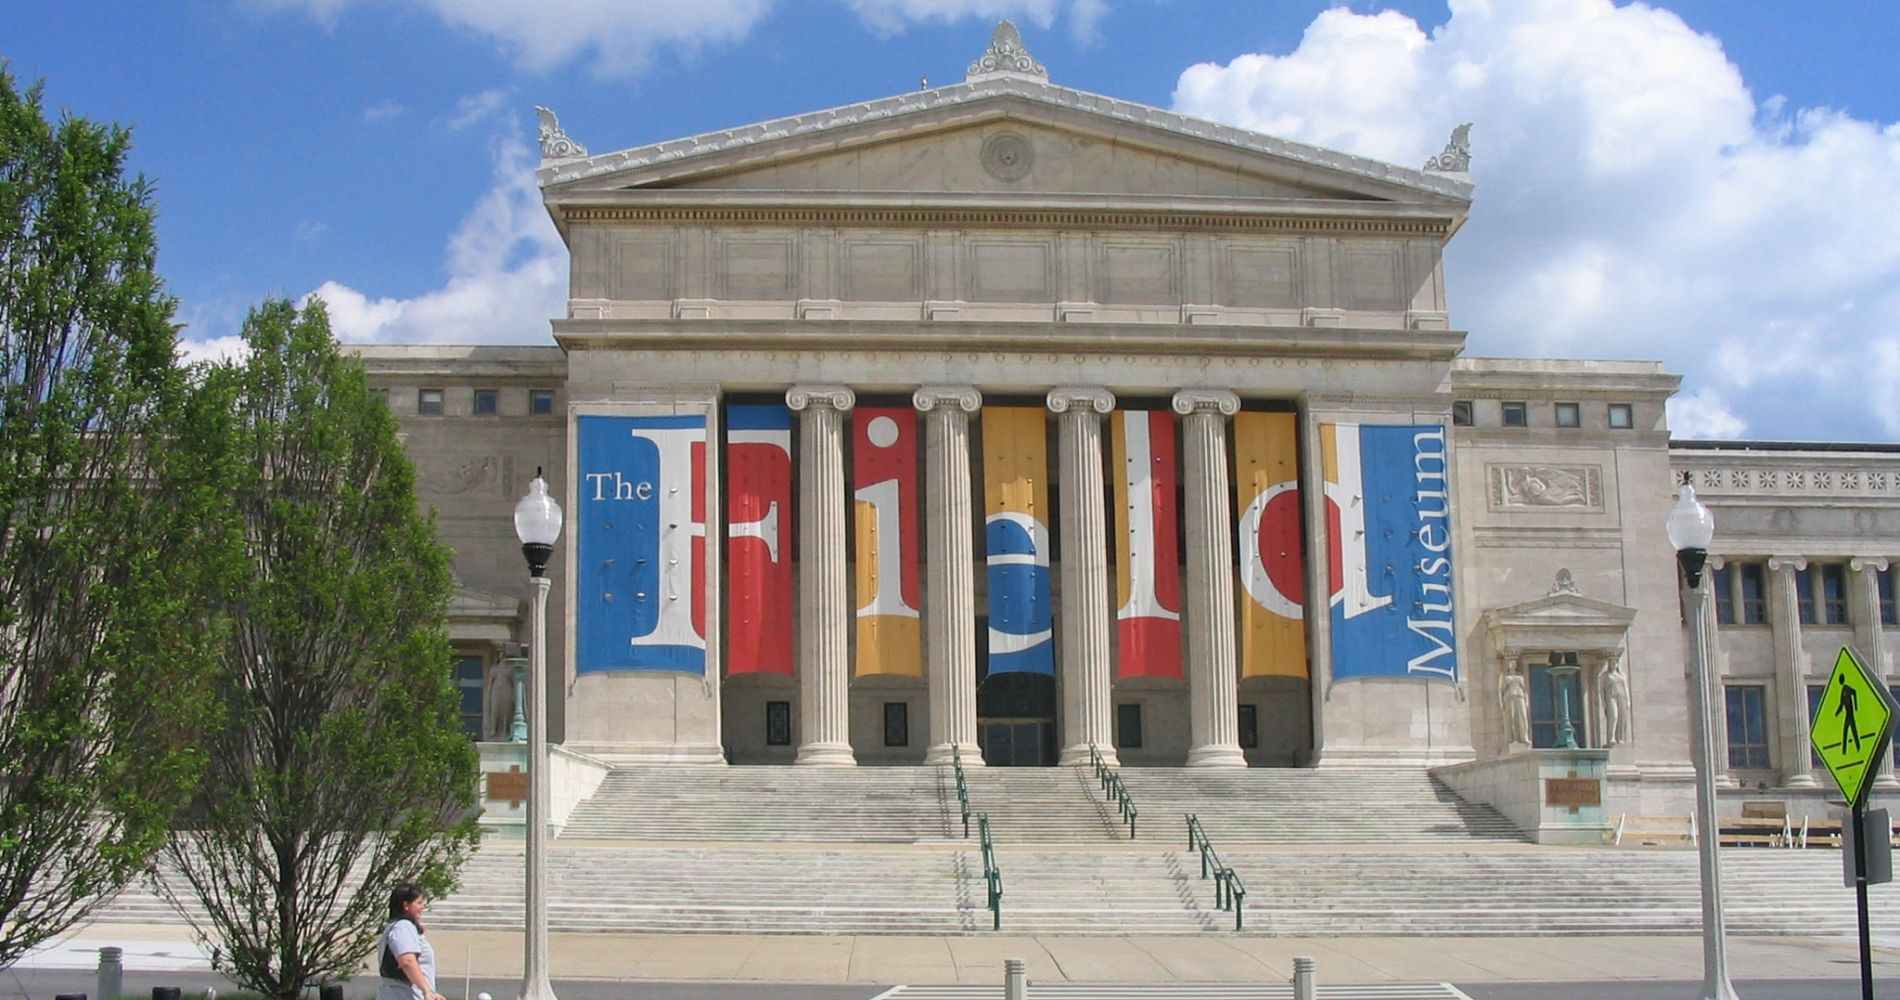 The Best Chicago including Field Museum for Two